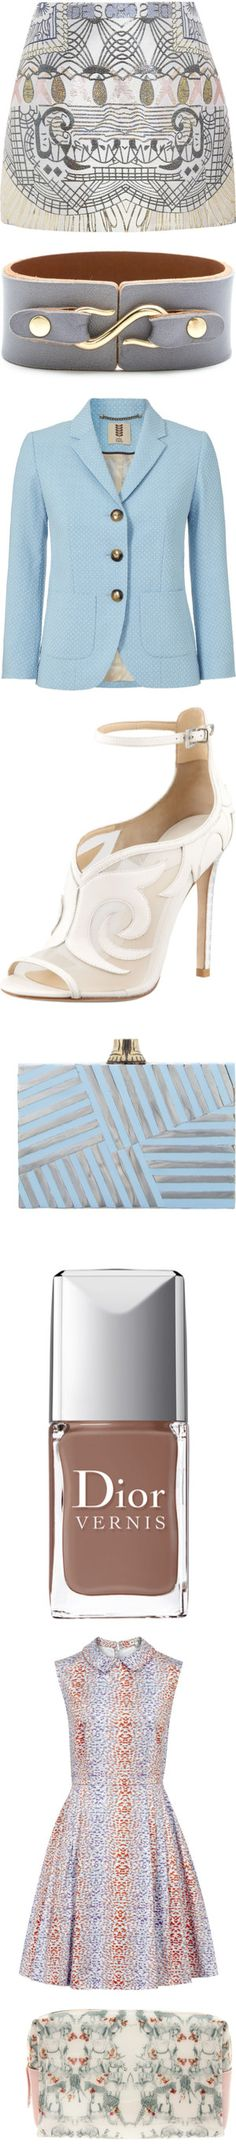 """New Releases"" by polyvore ❤ liked on Polyvore"